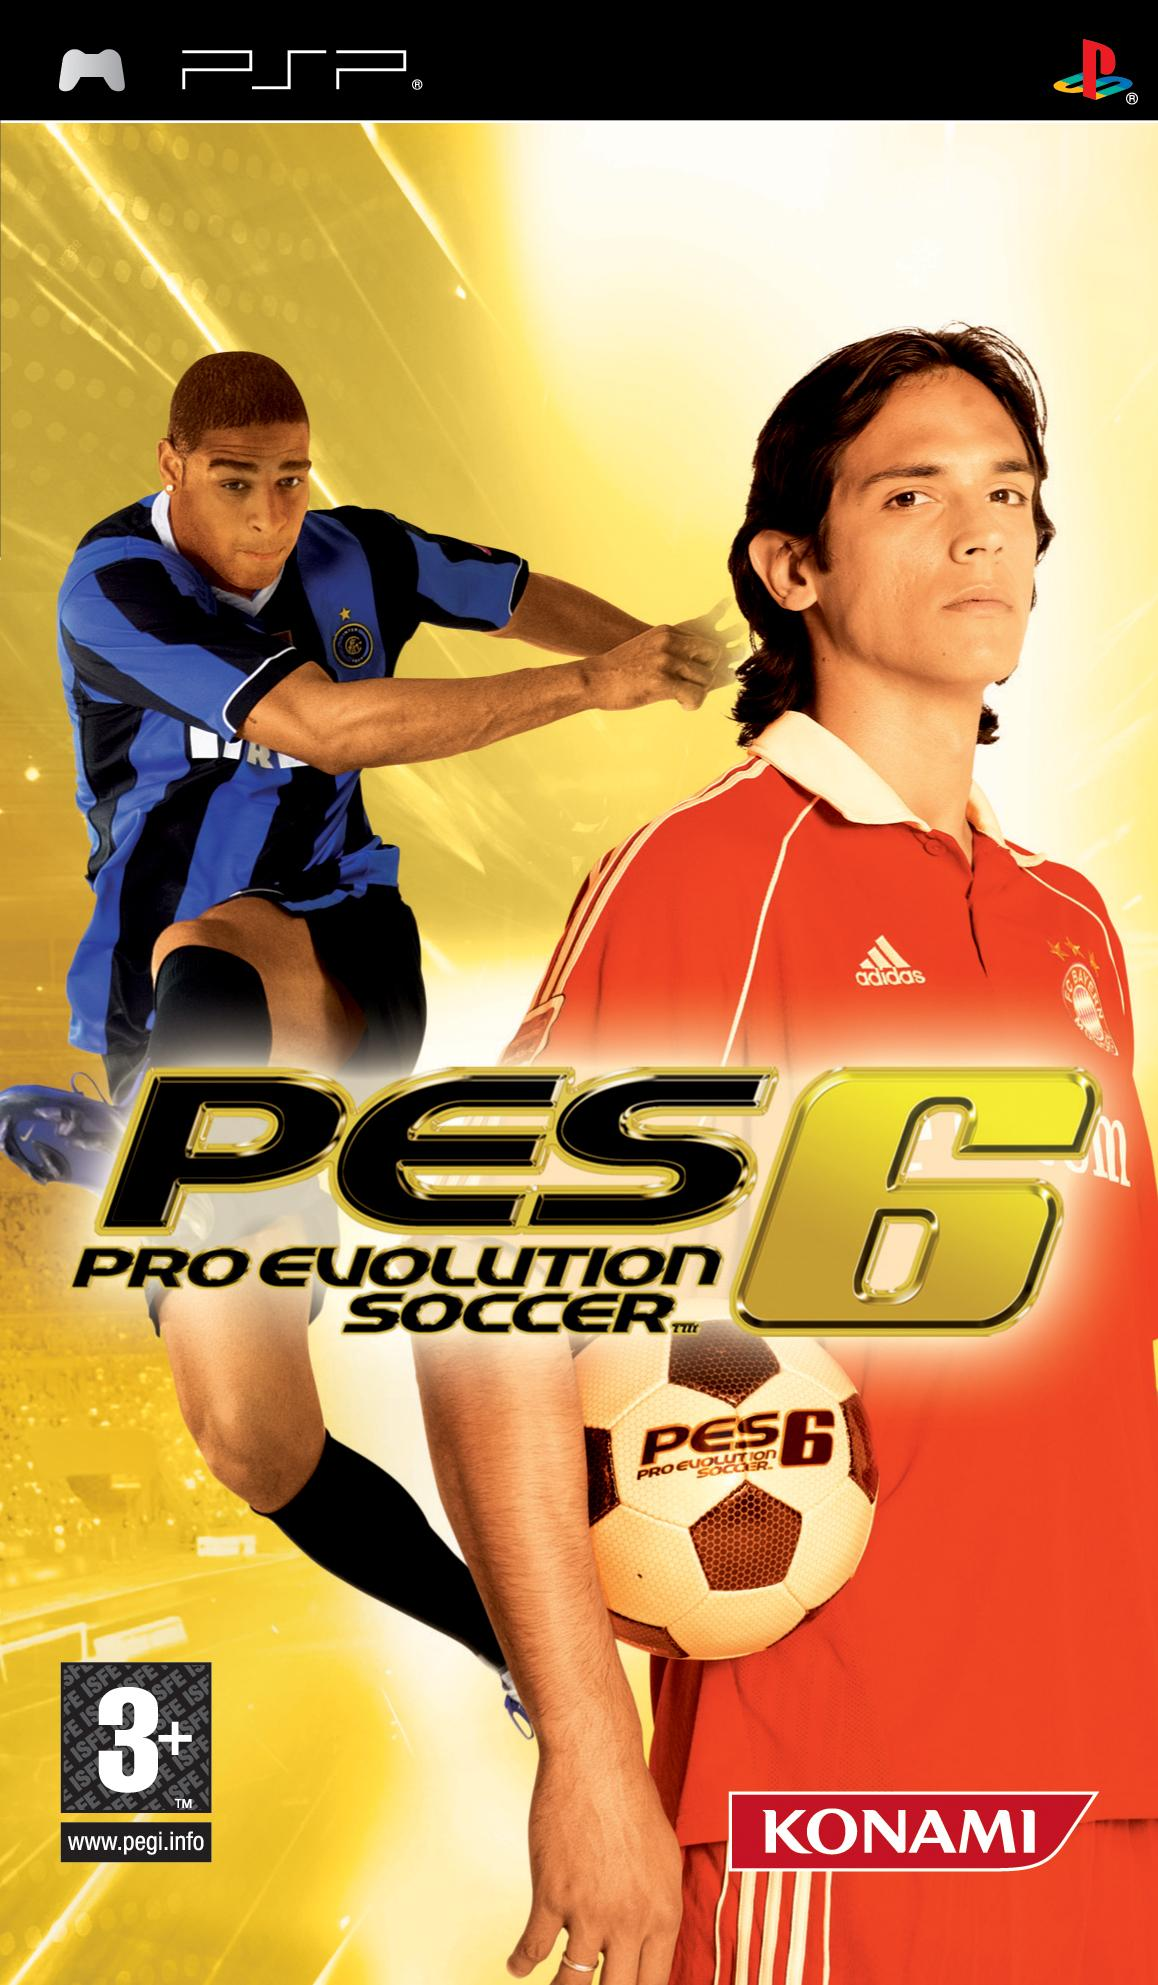 PES 6 PS3 with Patch 2020: Option of Soccer Game with Low-Specs PC